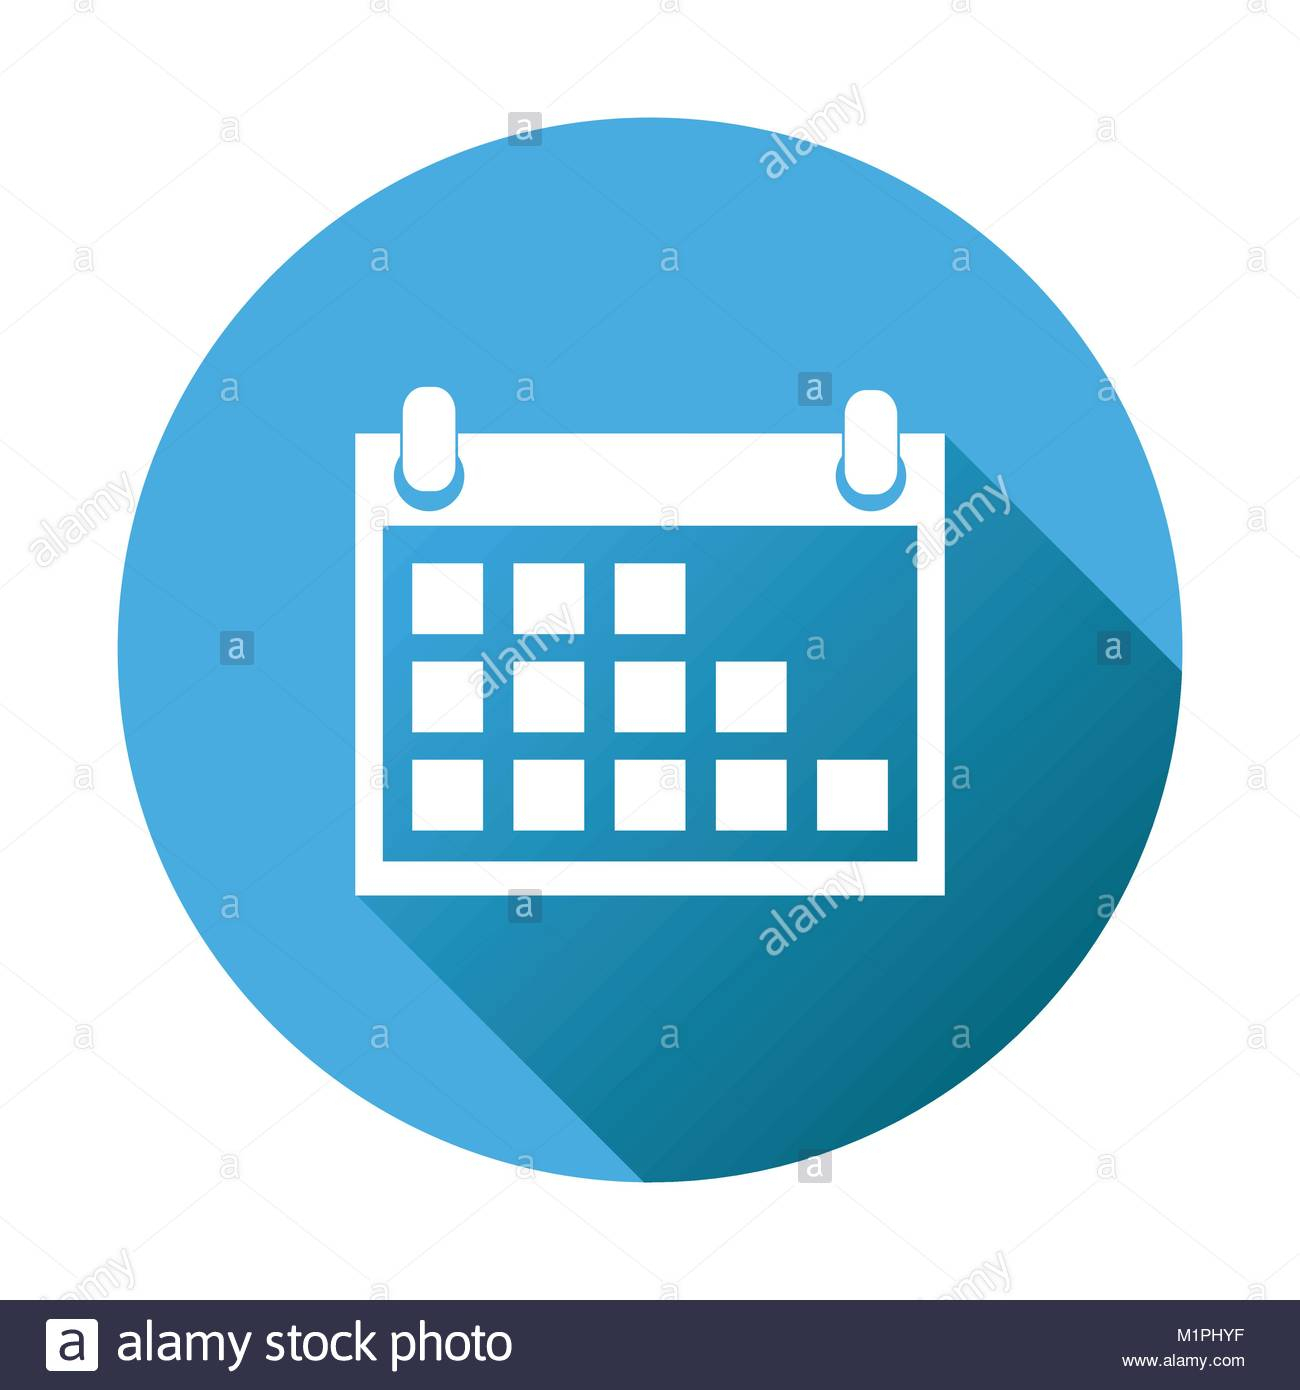 Calendar Icon On Blue Round Background, Vector Illustration intended for Round Calendar Icon